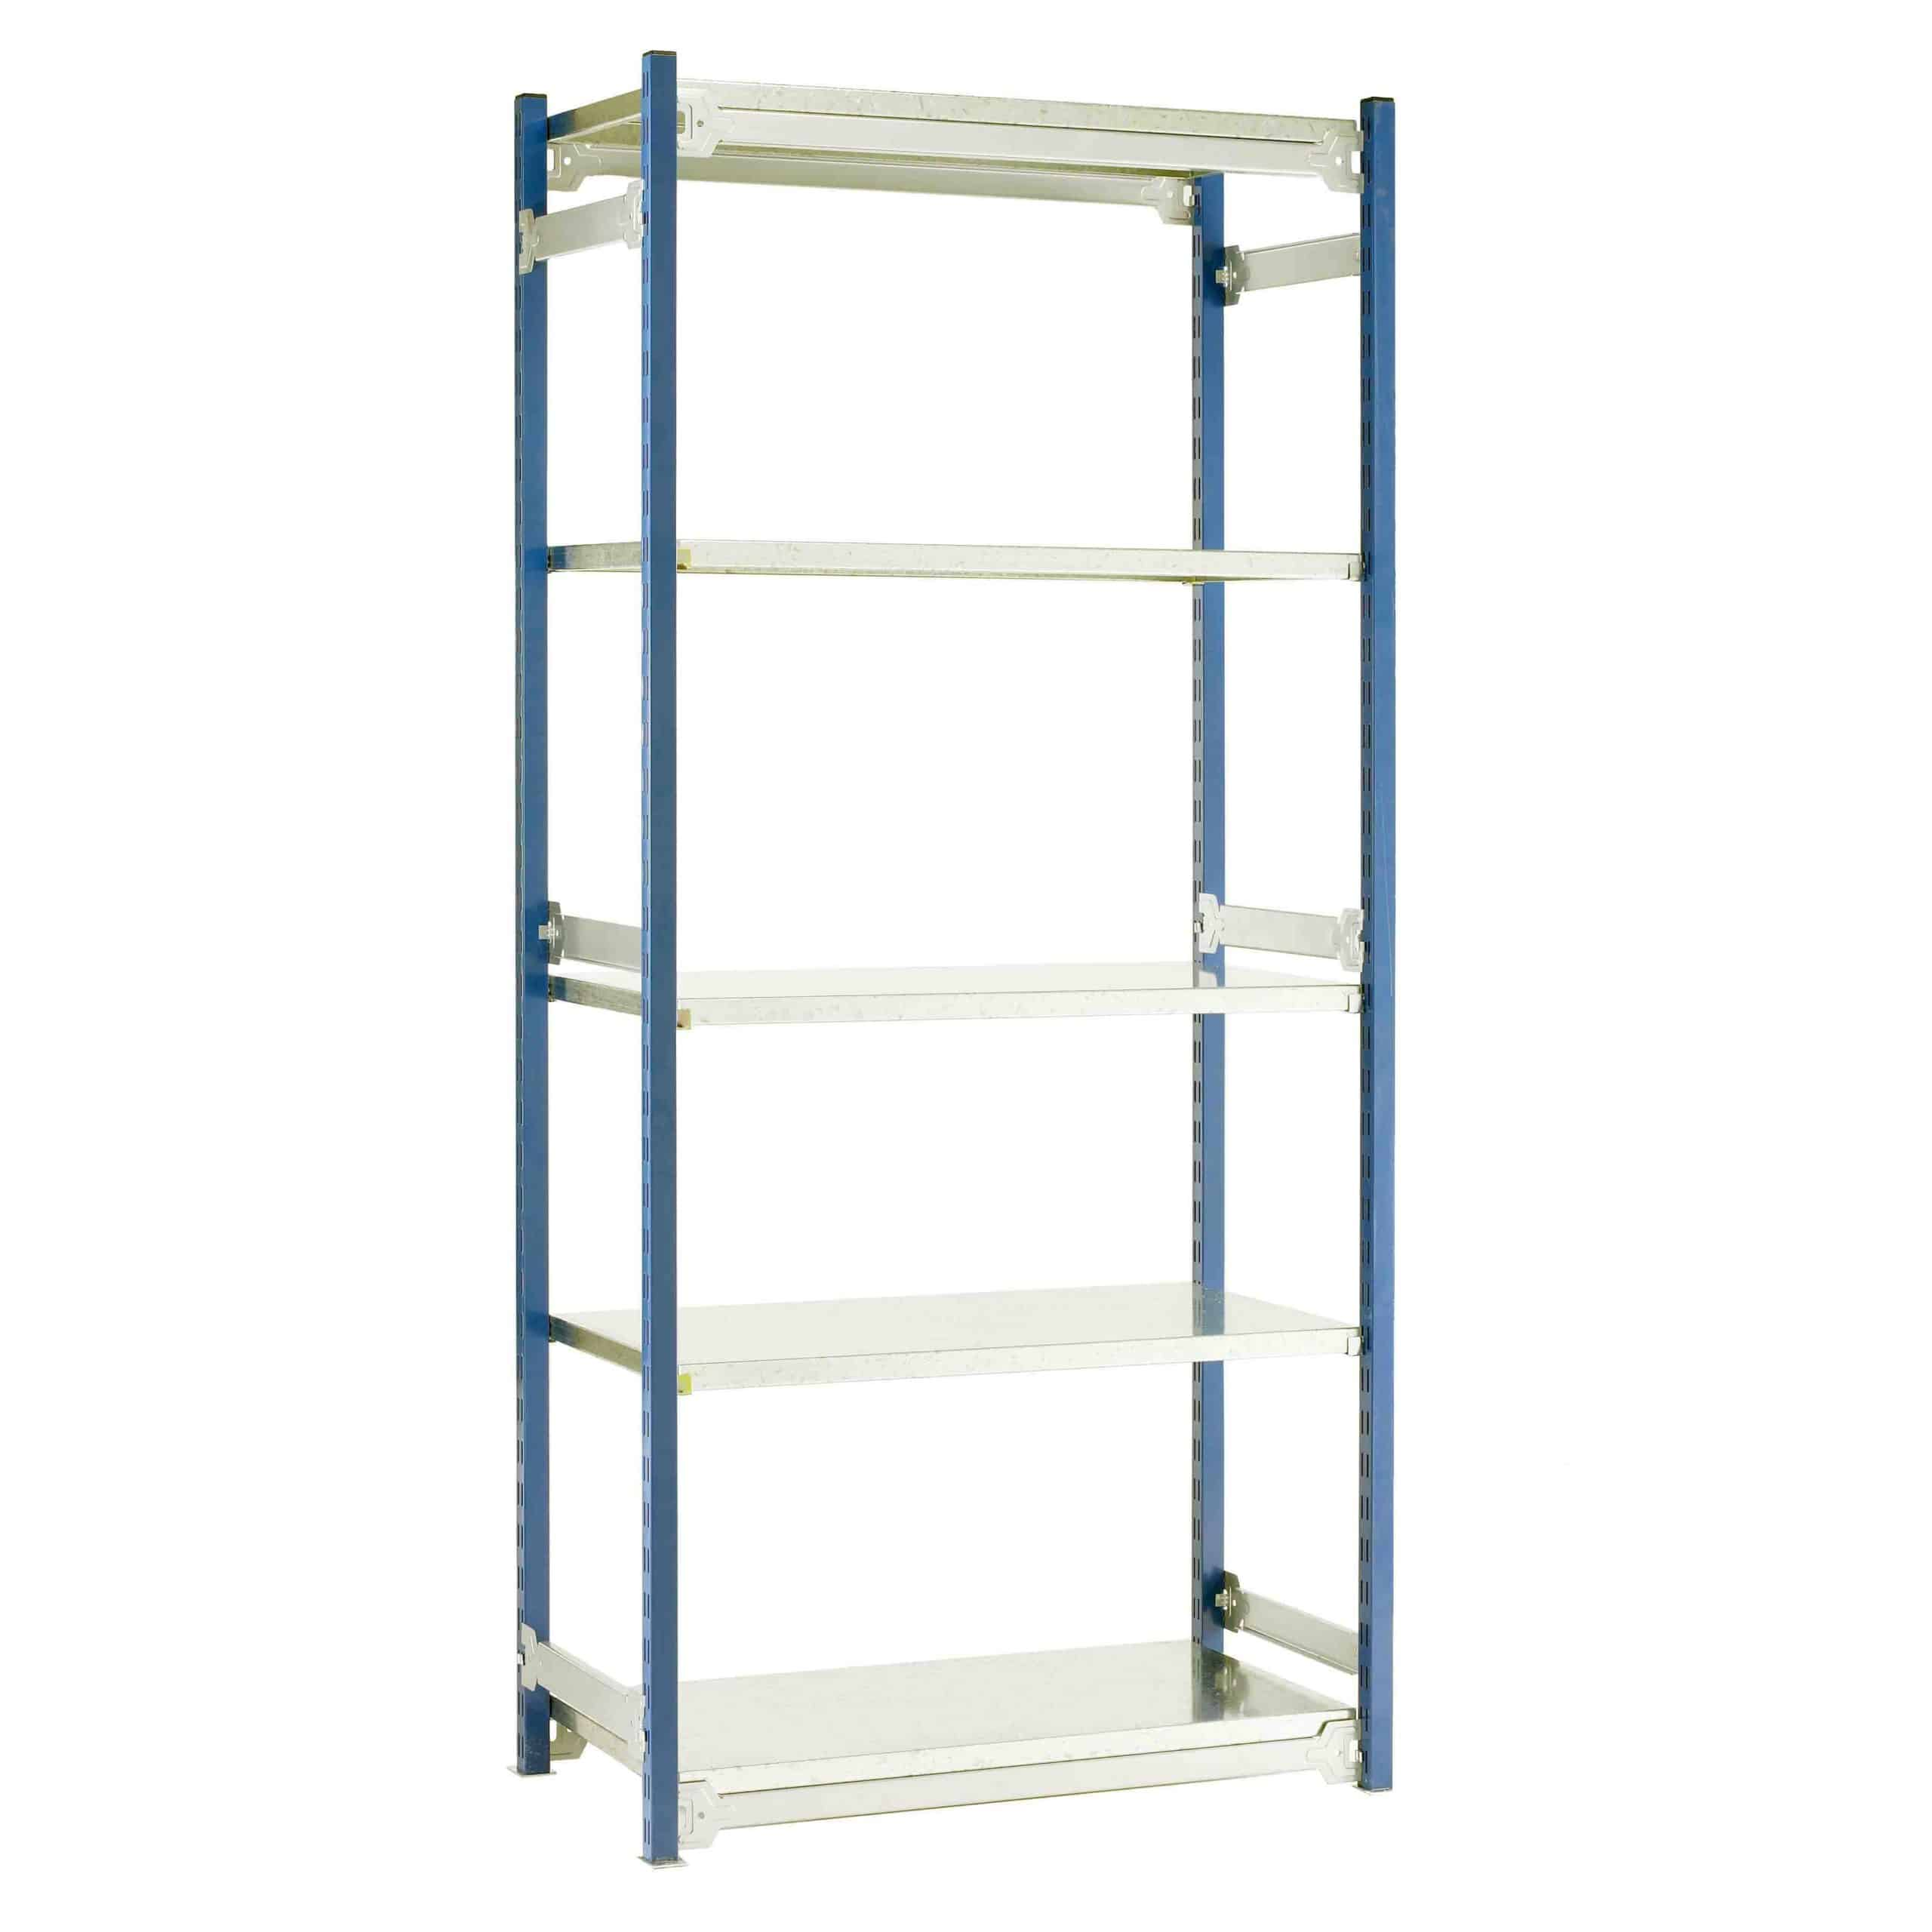 Toprax Shelving Single Bay